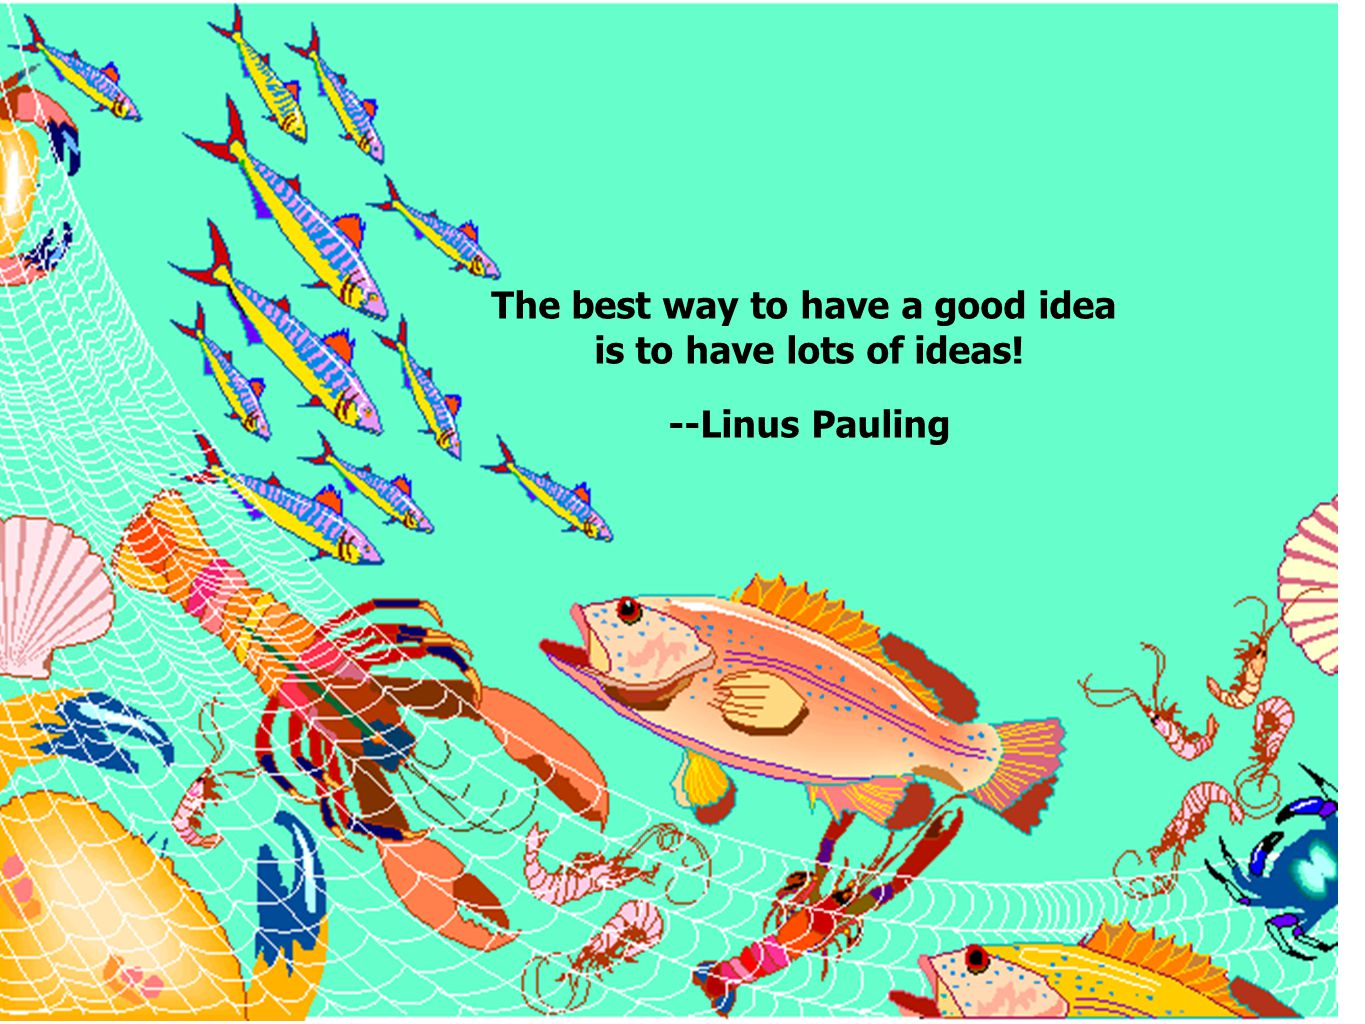 The best way to have a good idea is to have lots of ideas! --Linus Pauling